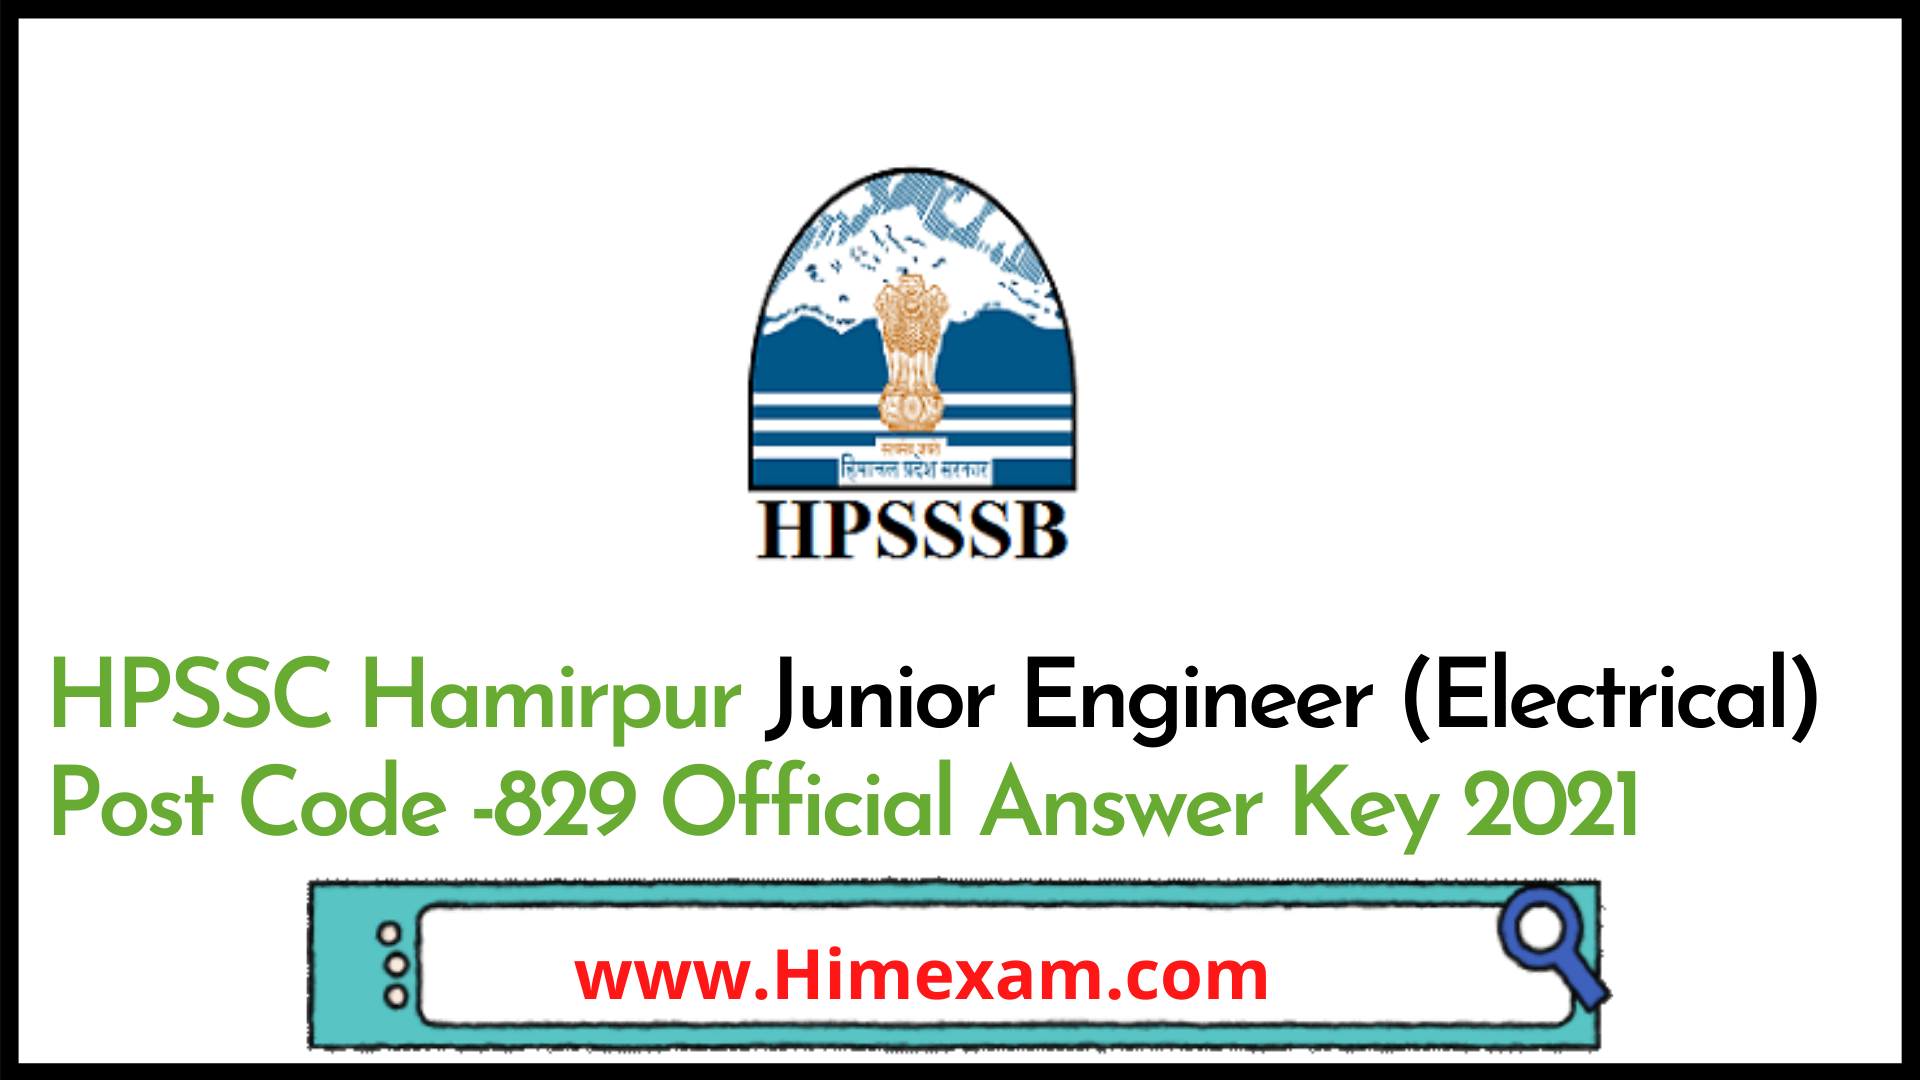 HPSSC Hamirpur Junior Engineer (Electrical) Post Code -829 Official Answer Key 2021